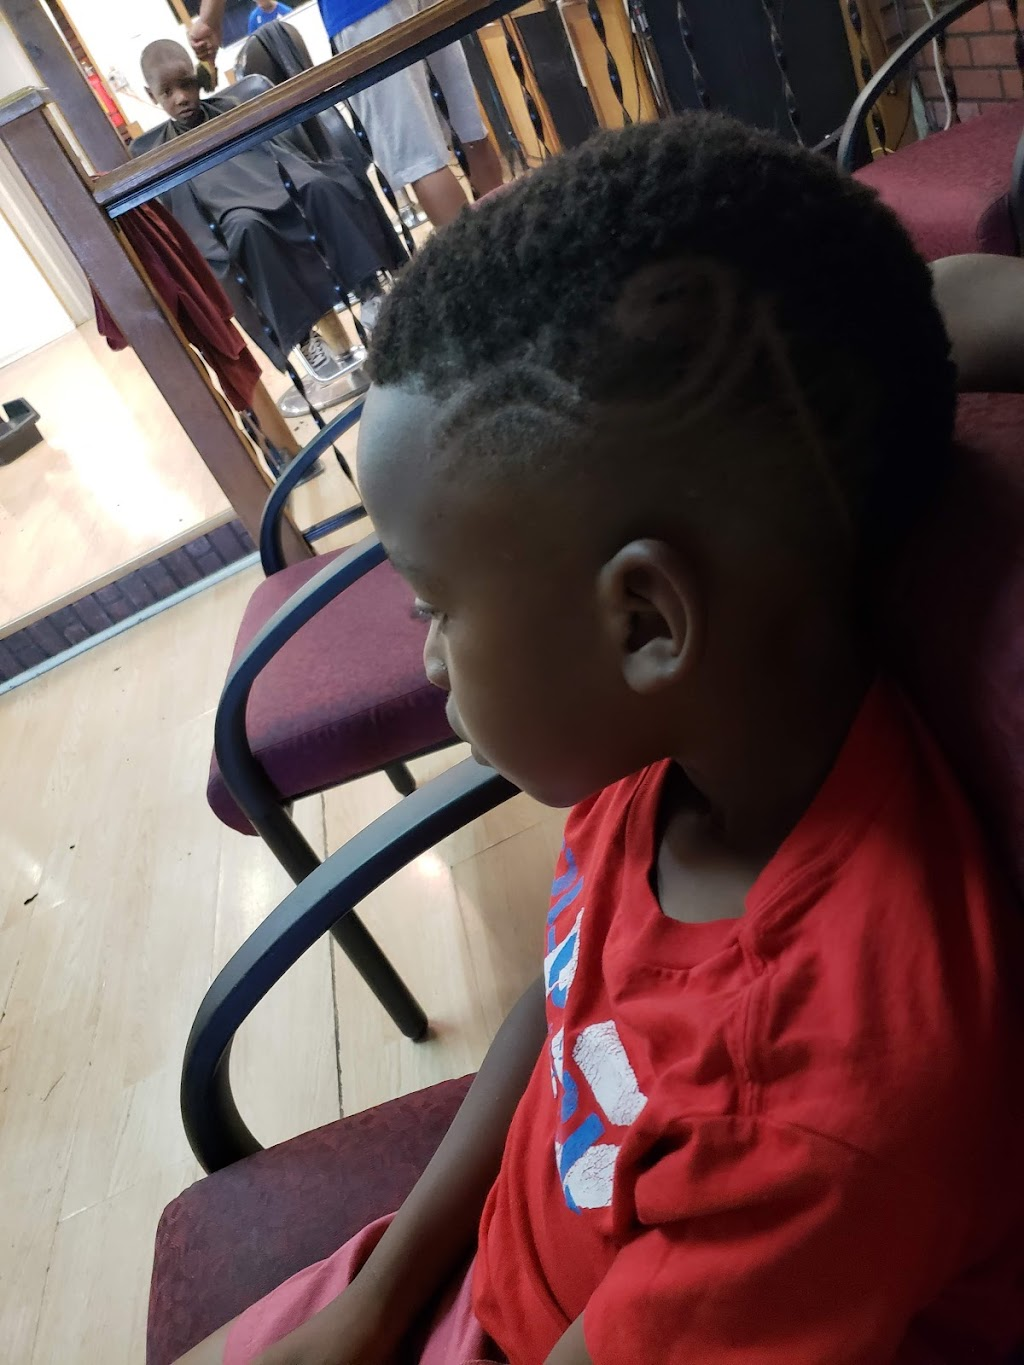 Top of the Line Barber Shop - hair care  | Photo 4 of 7 | Address: 4390 N 27th St, Milwaukee, WI 53216, USA | Phone: (414) 449-0351